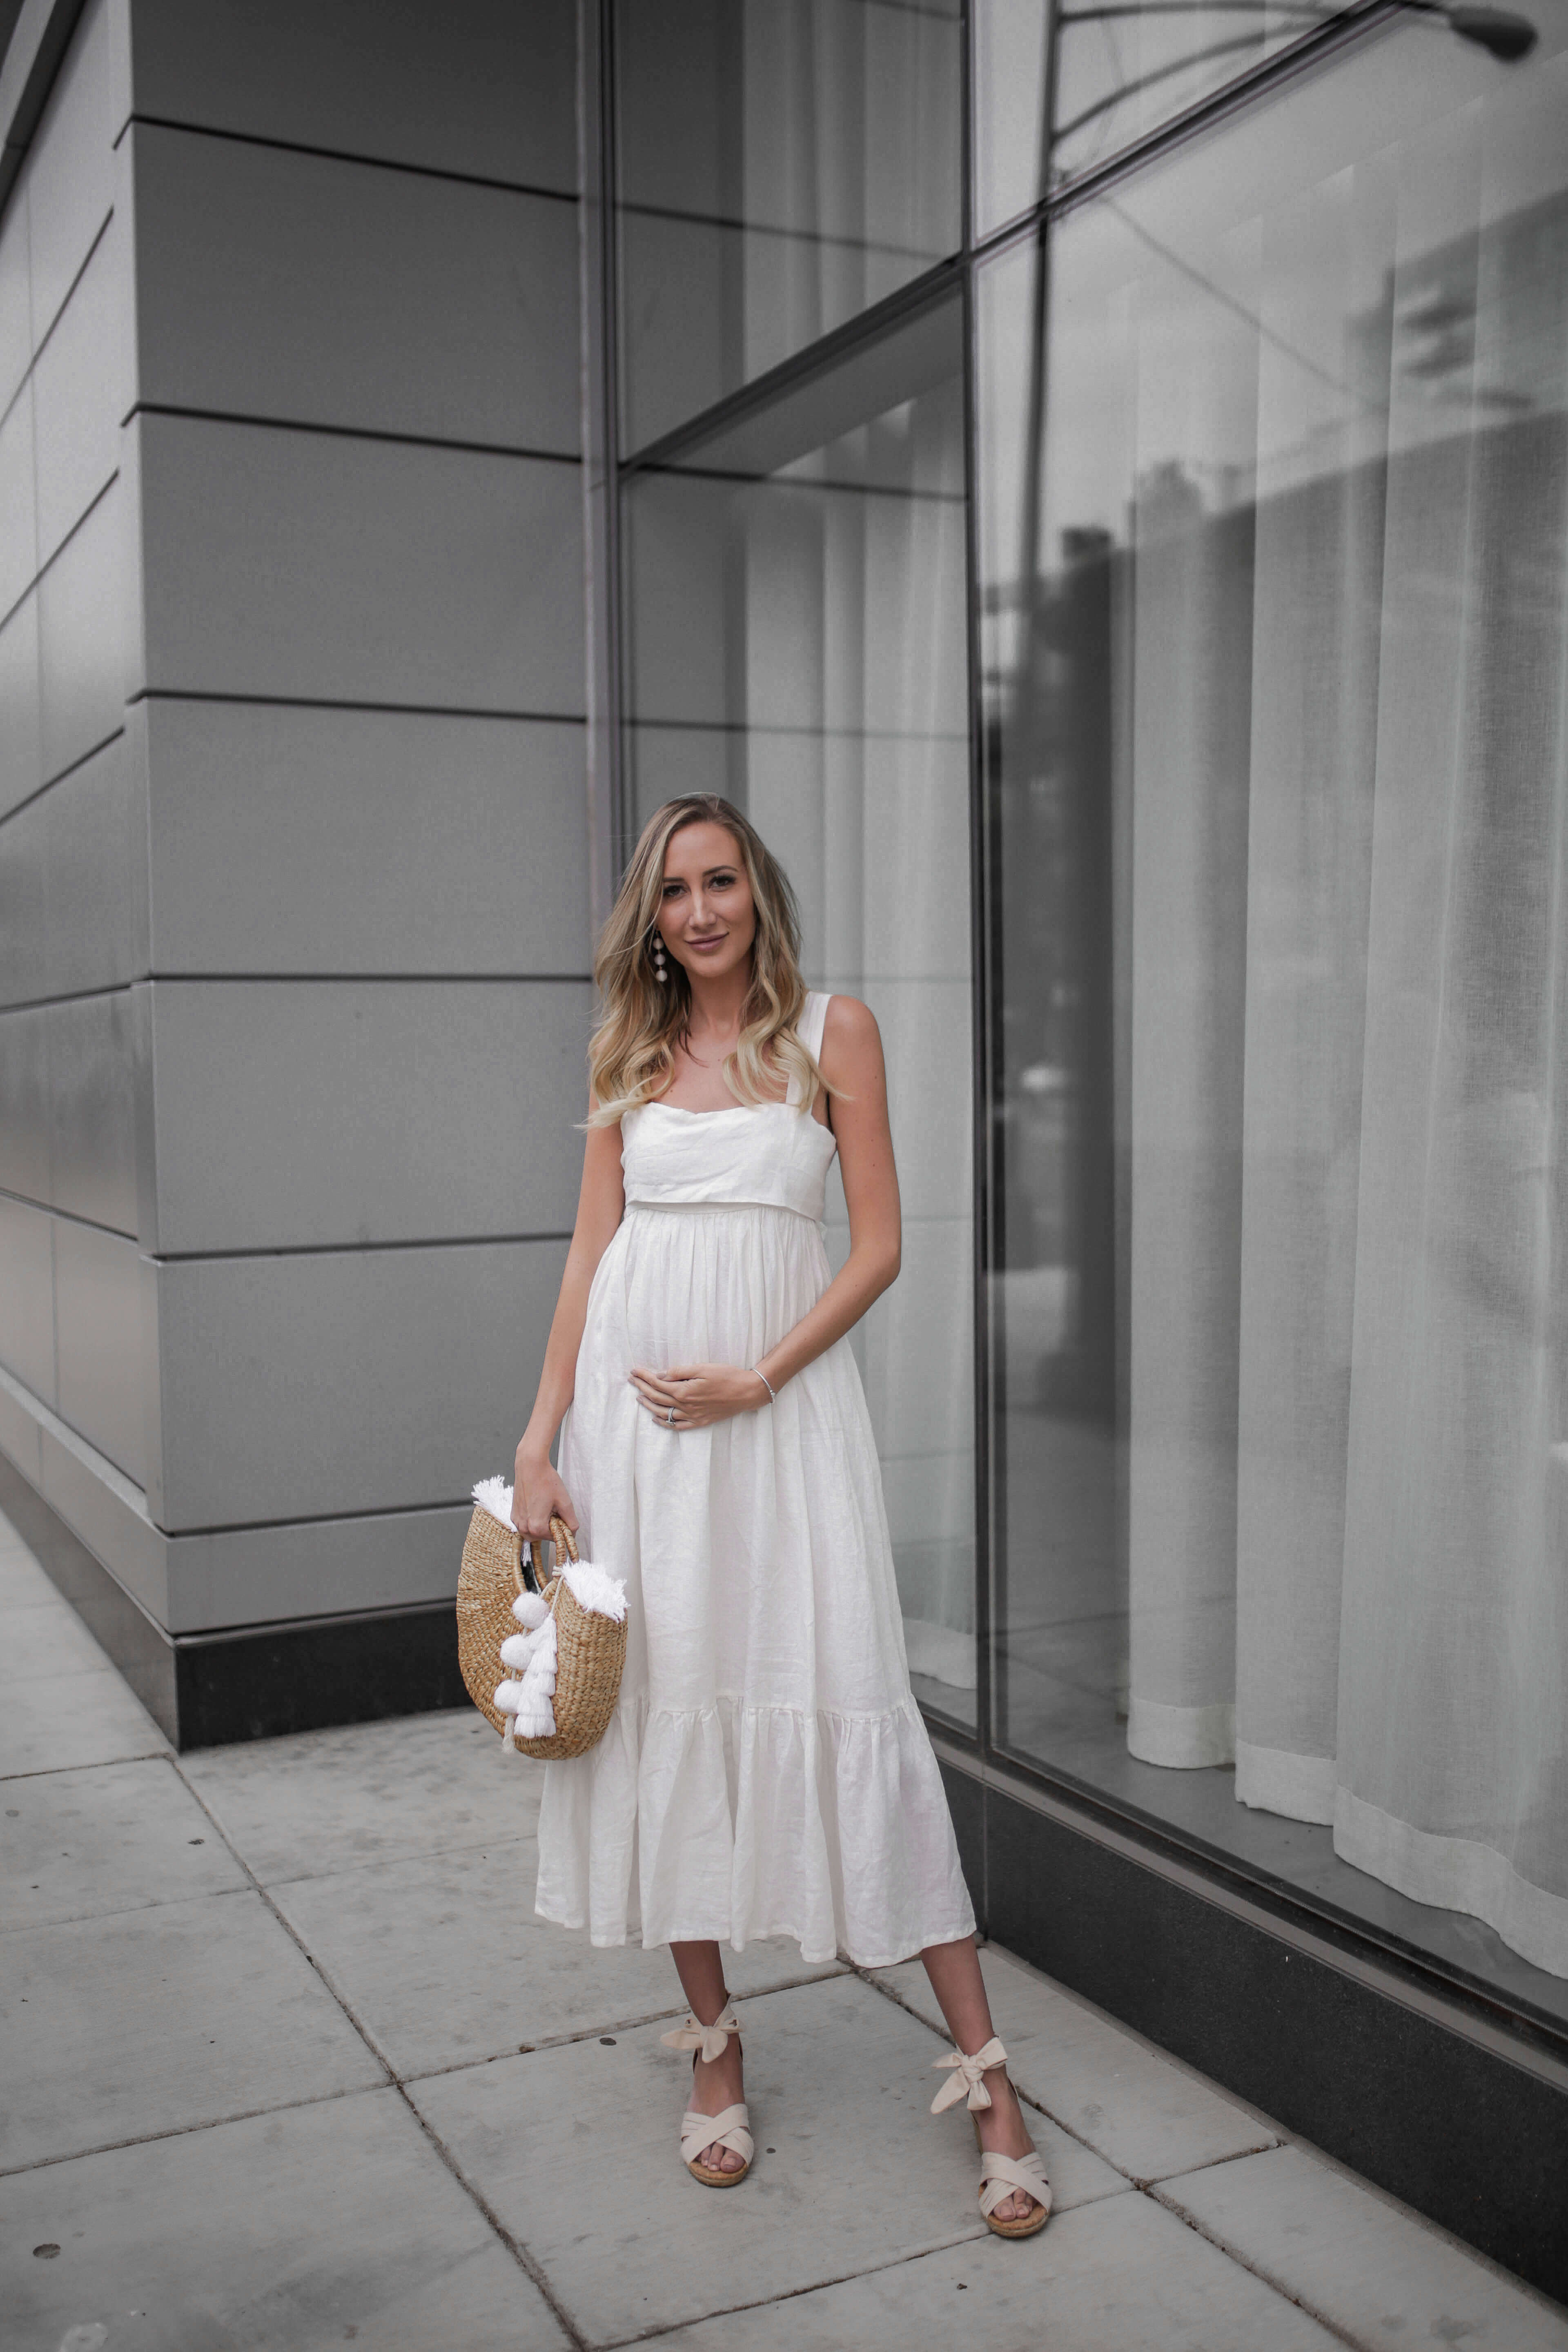 Carly Cristman wearing a summer white linen dress with wedges, Summer Trends 2018, CAARA Forget Me Not Linen Midi Dress, UGG Traci Espadrille Wedge Sandal, basket bag